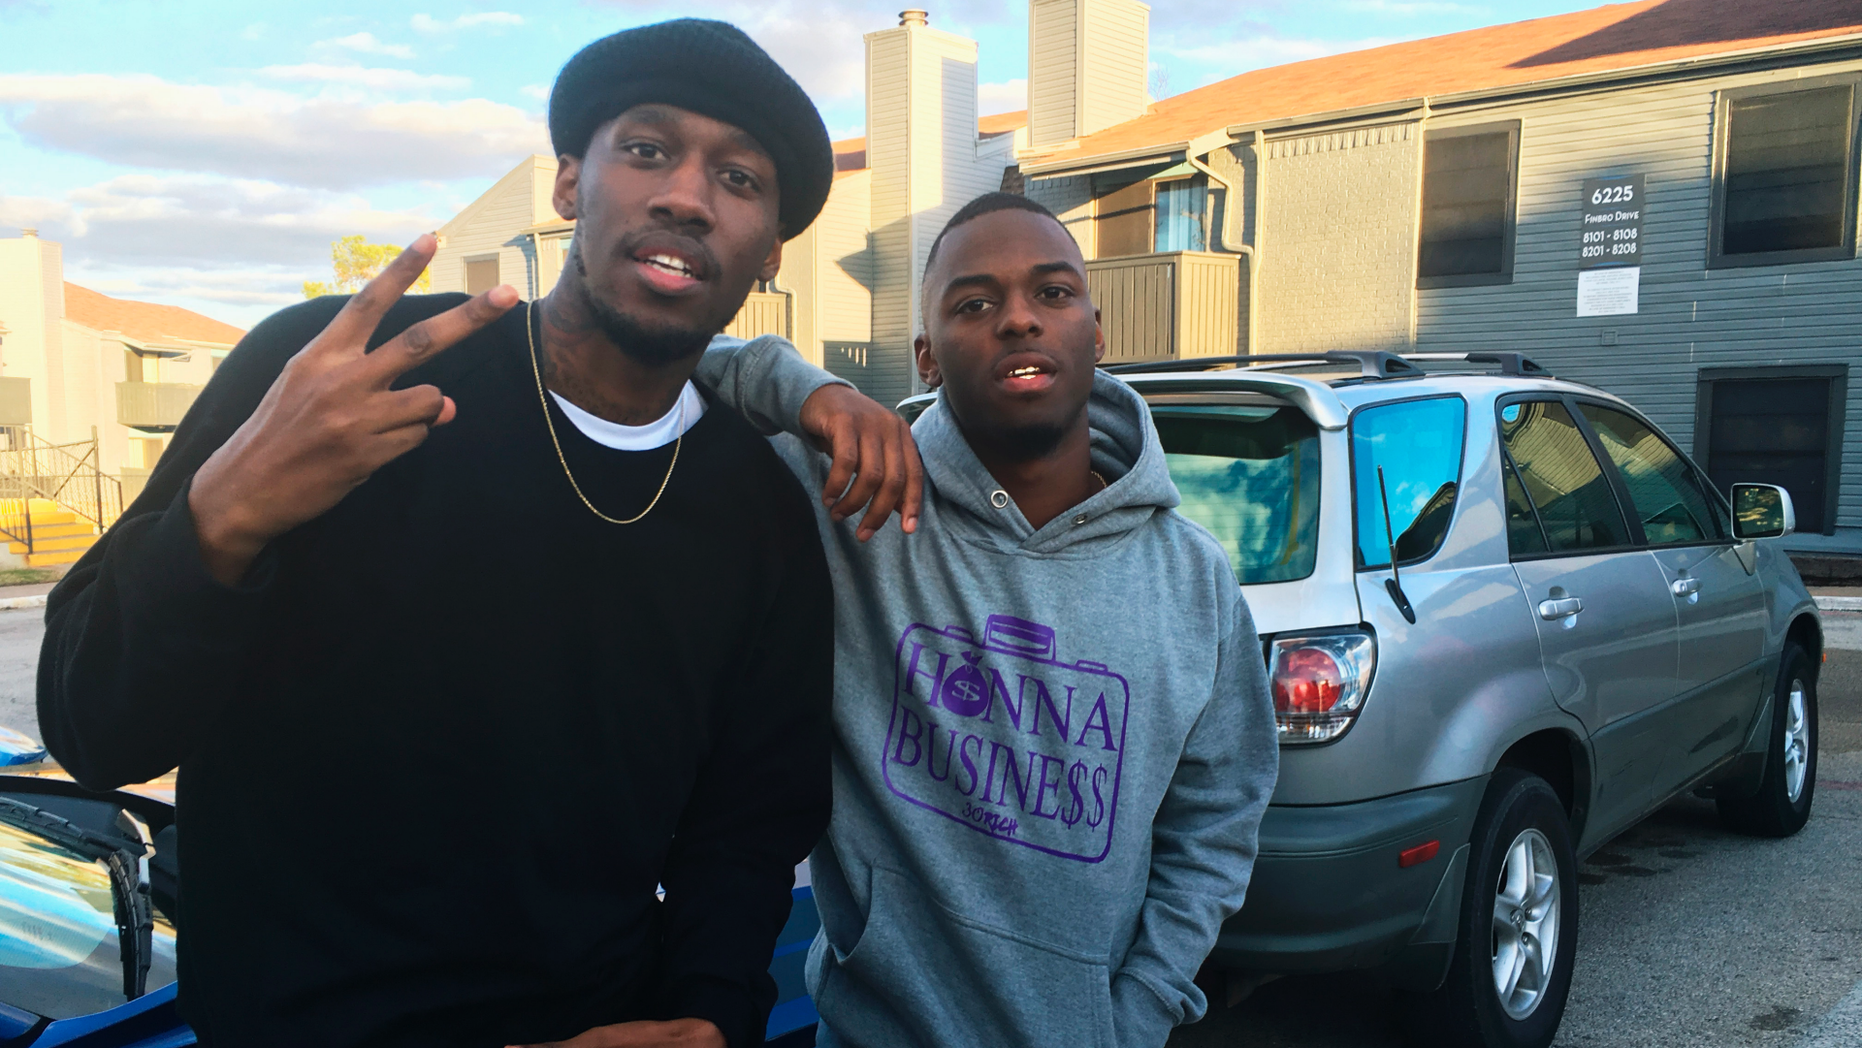 """In this Dec. 27, 2018, photo, video blogger Shawn Cotton, left, poses for a portrait with rapper Wayne Walker, who performs under the stage name 30 Rich, after Cotton interviewed Walker for his YouTube channel """"Say Cheese TV,"""" in Fort Worth, Texas. The killing of Zack Stoner, a pioneer in a new genre of news in which videographers interview street gangs and rappers in high-crime areas, has unnerved other gangland reporters nationwide, including Cotton. (AP Photo/John L. Mone)"""